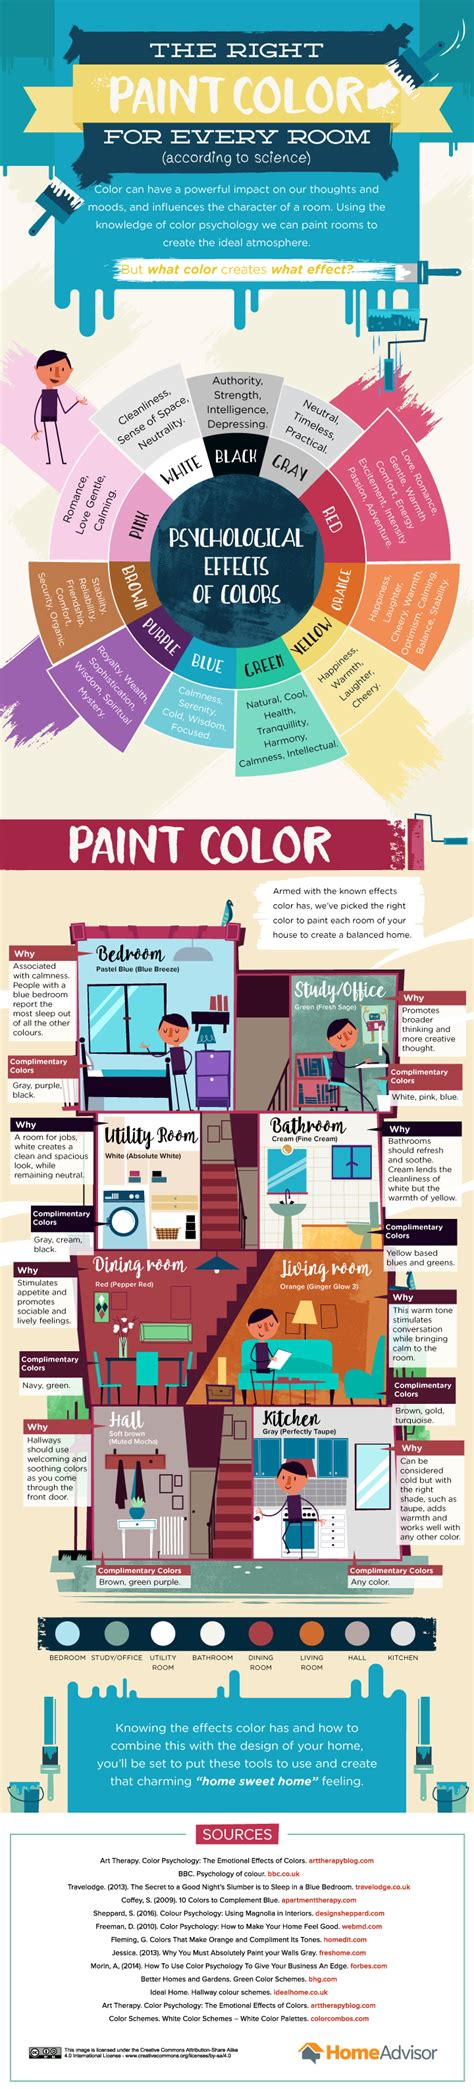 toronto house painters the right paint color for every room toronto house painter